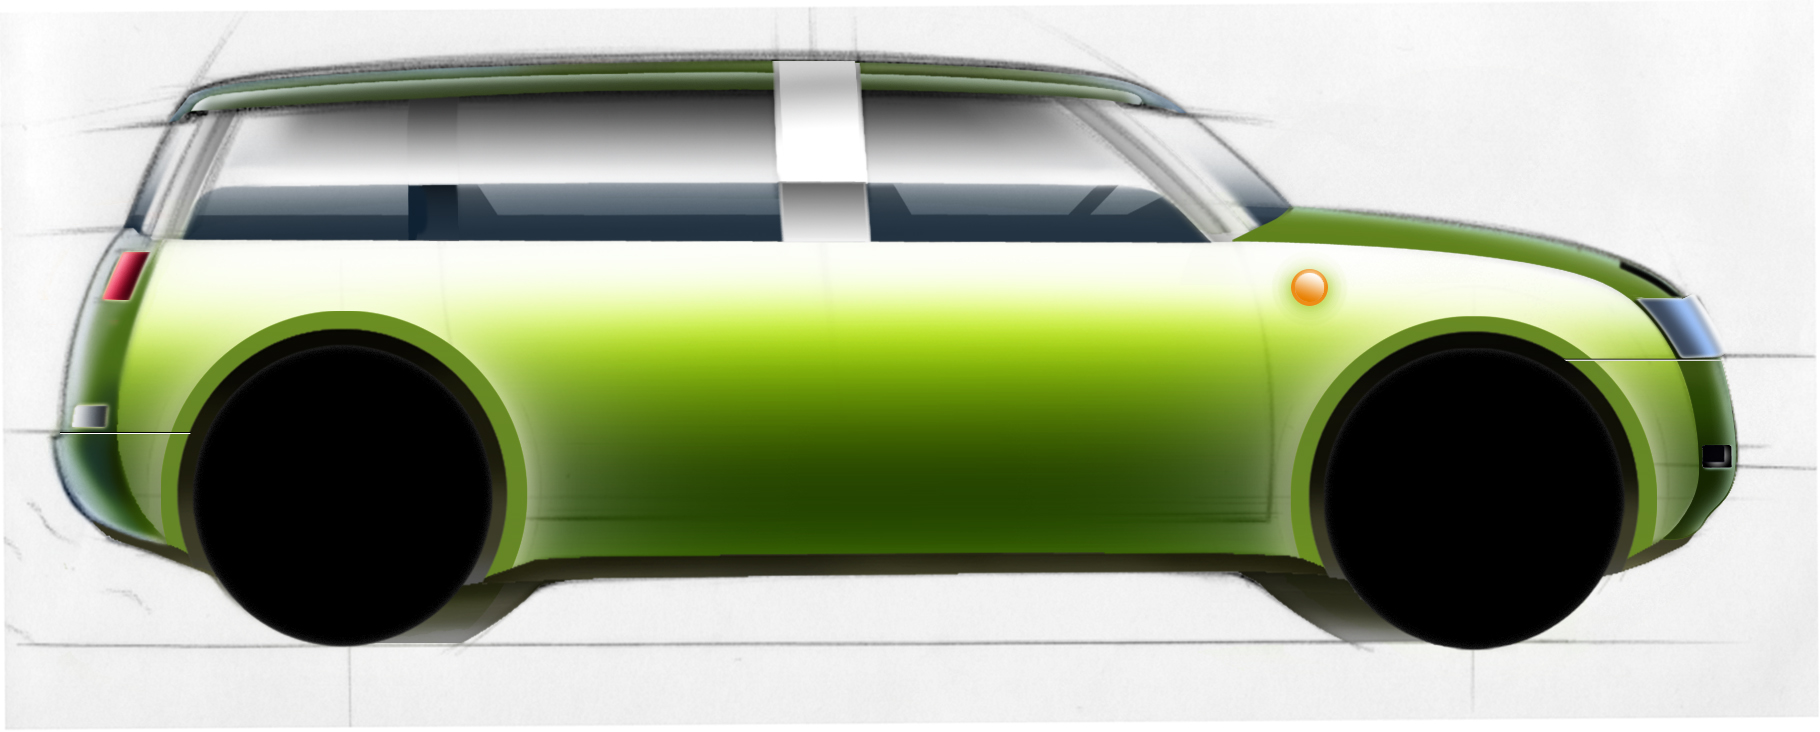 BAMBOO CAR SIDE VIEW RENDERING